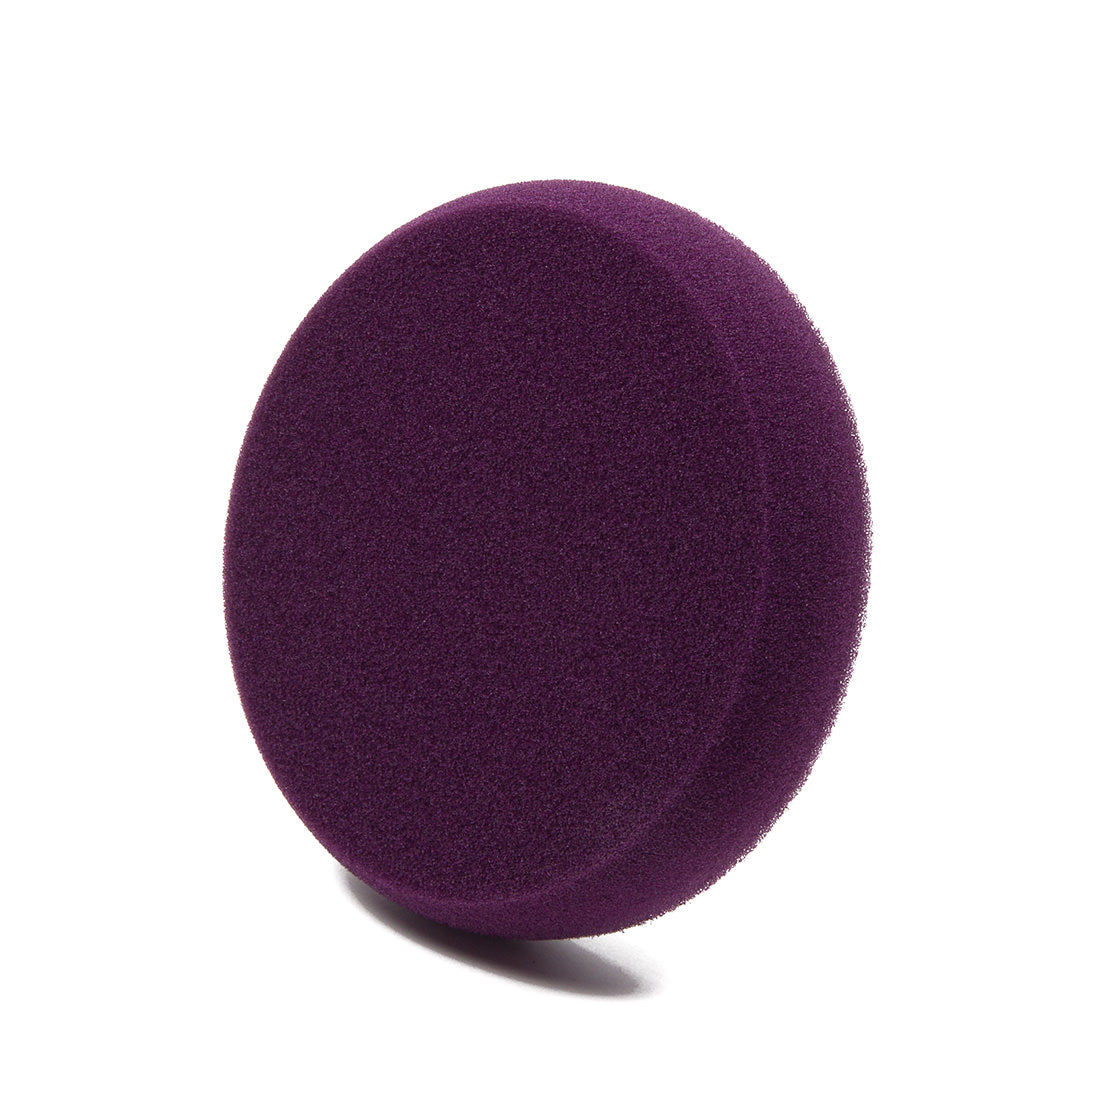 SCHOLL Concepts Premium Polishing Pad